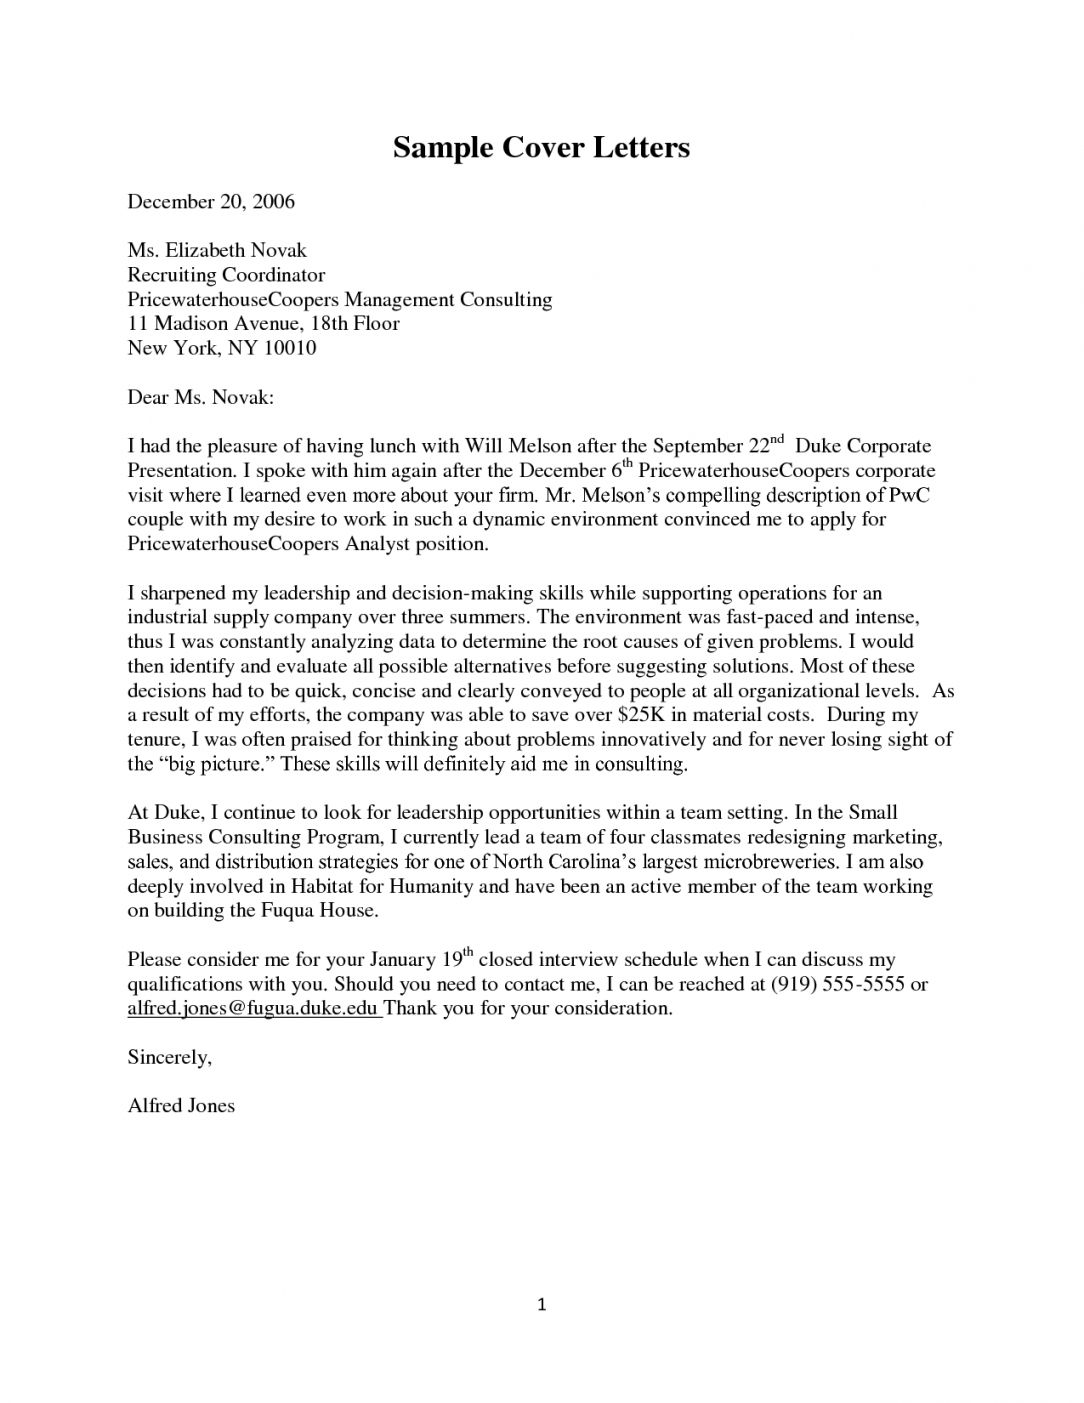 Cover Letter Template Consulting Consulting Cover Coverlettertemplate Letter Template Cute766